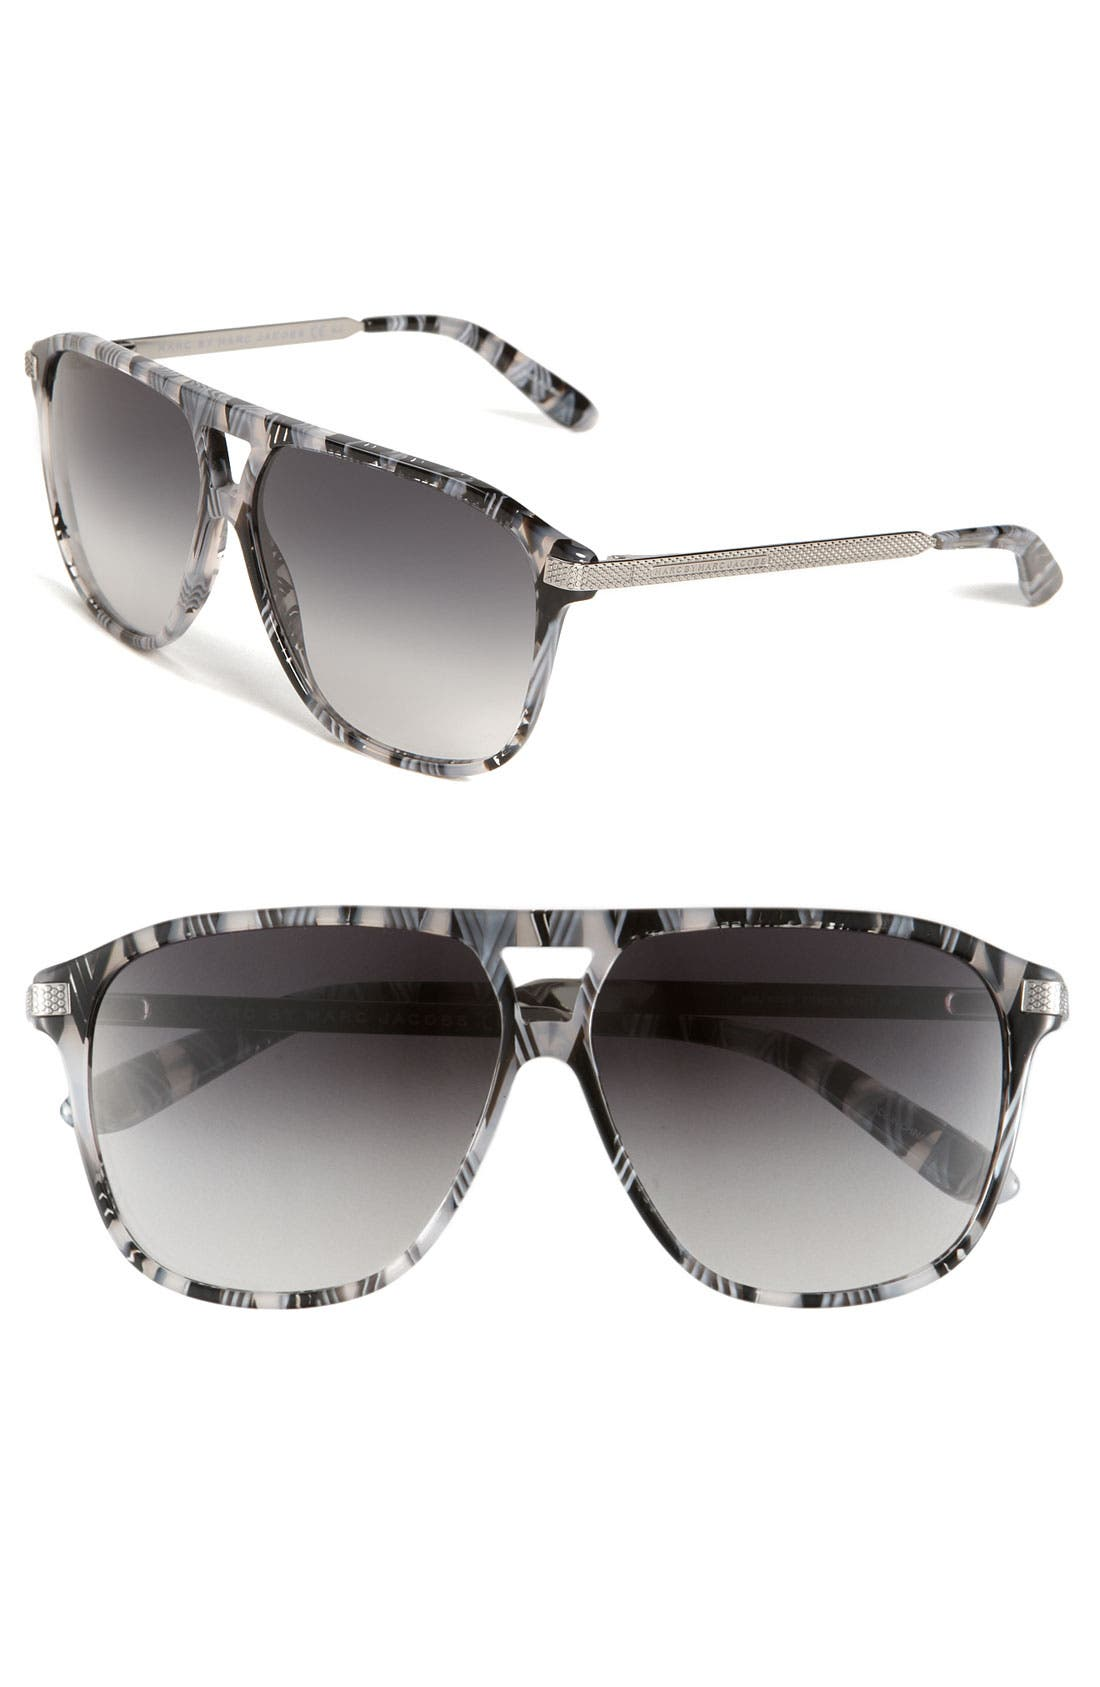 Main Image - MARC BY MARC JACOBS 'International Collection' Sunglasses